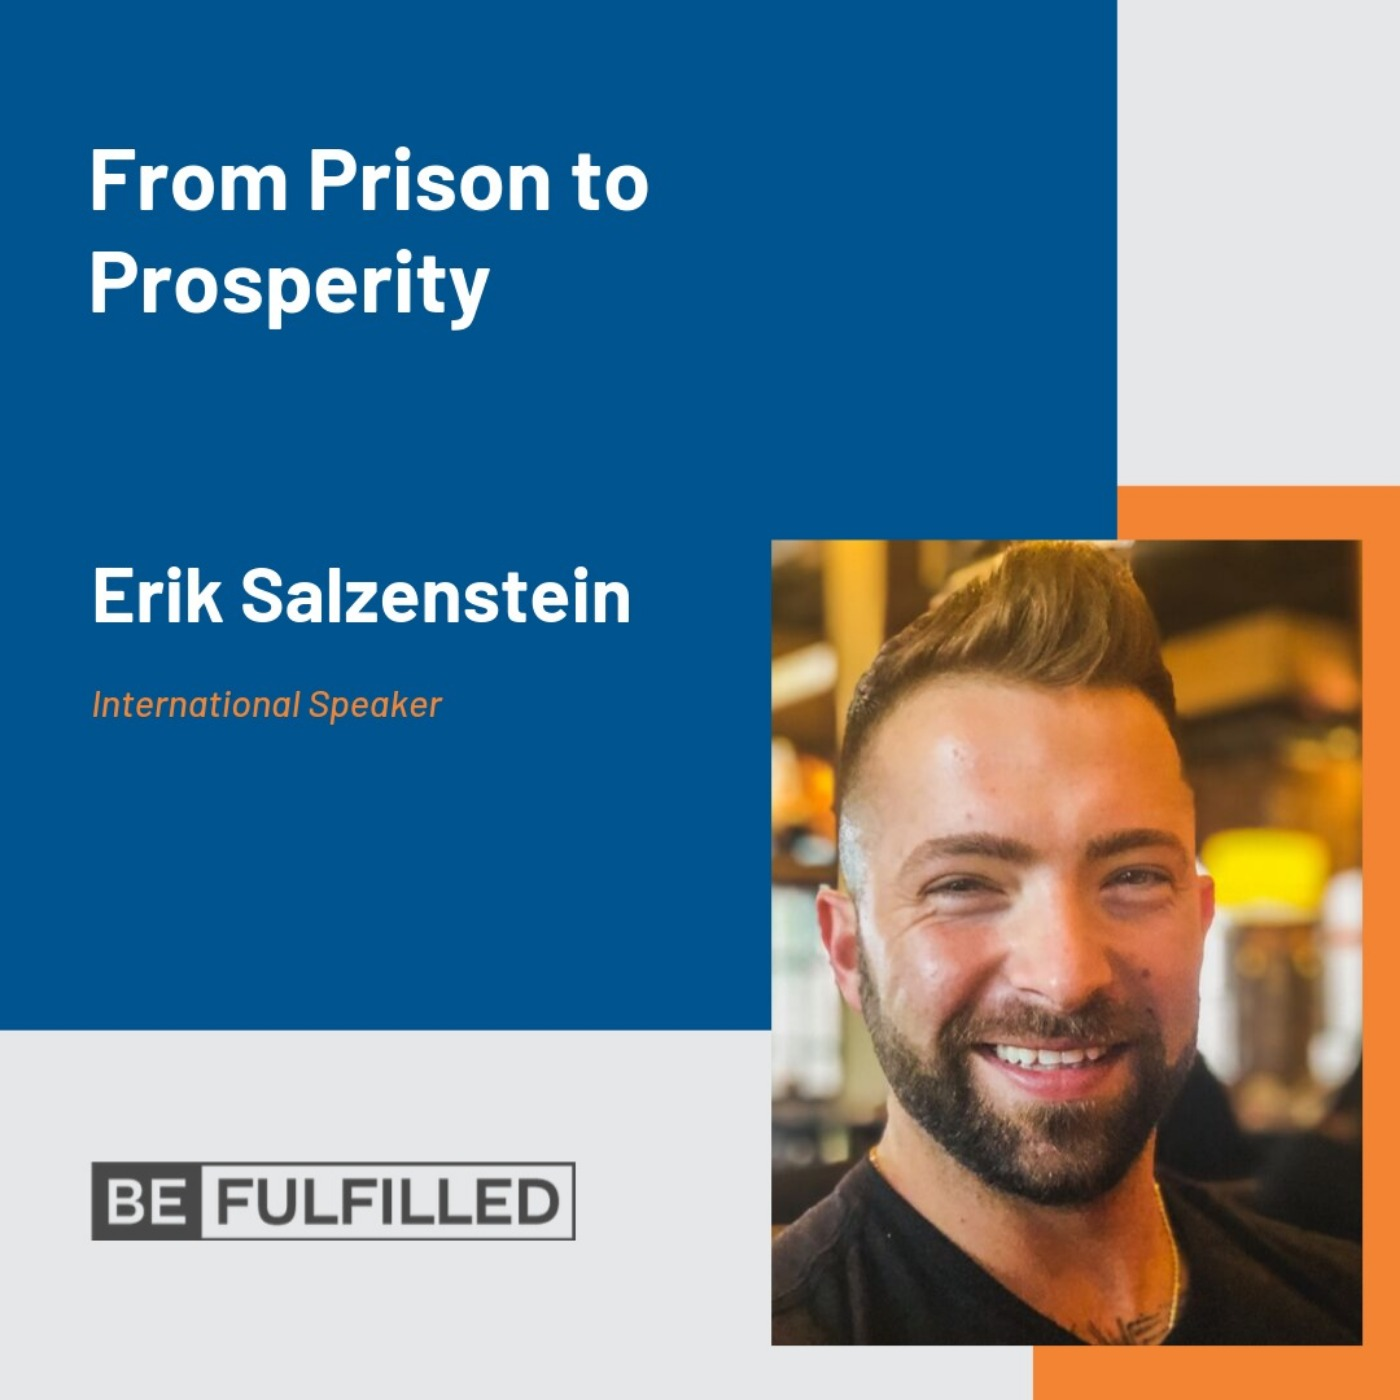 From Prison To Prosperity - Erik Salzenstein